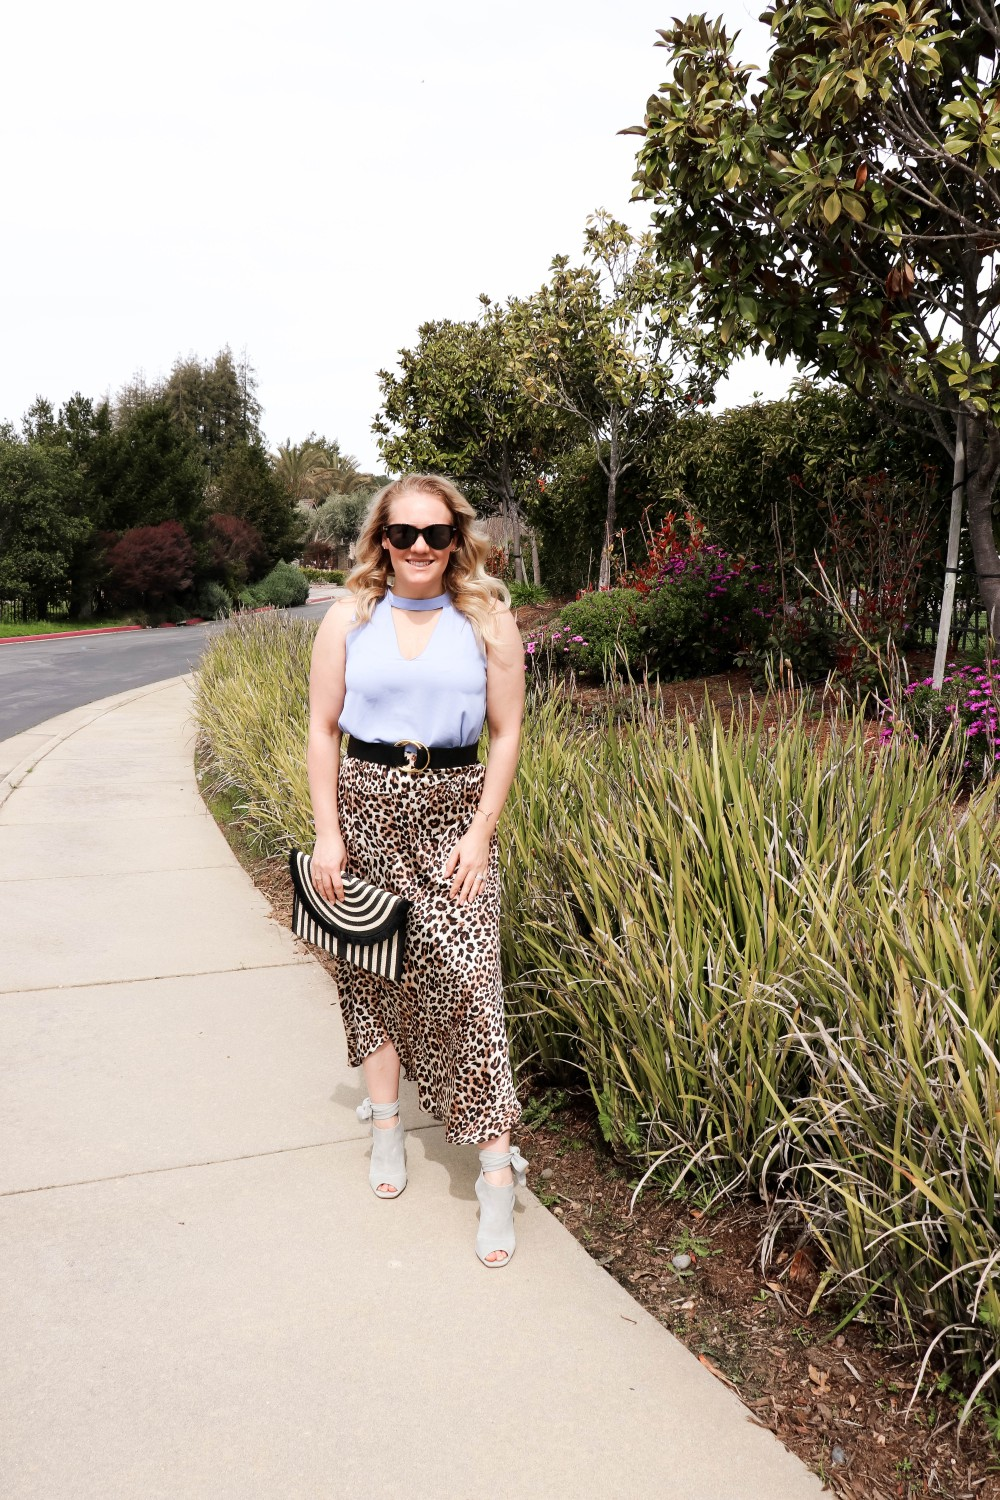 Sharing this perfect for Spring look and showing you how to style leopard print for spring on Have Need Want! Click on the photo to check out the post + get outfit details and similar options you can shop now! #outfitinspiration #springstyle #leopardprintskirt #stylingtips #springfashion #fashiontrends